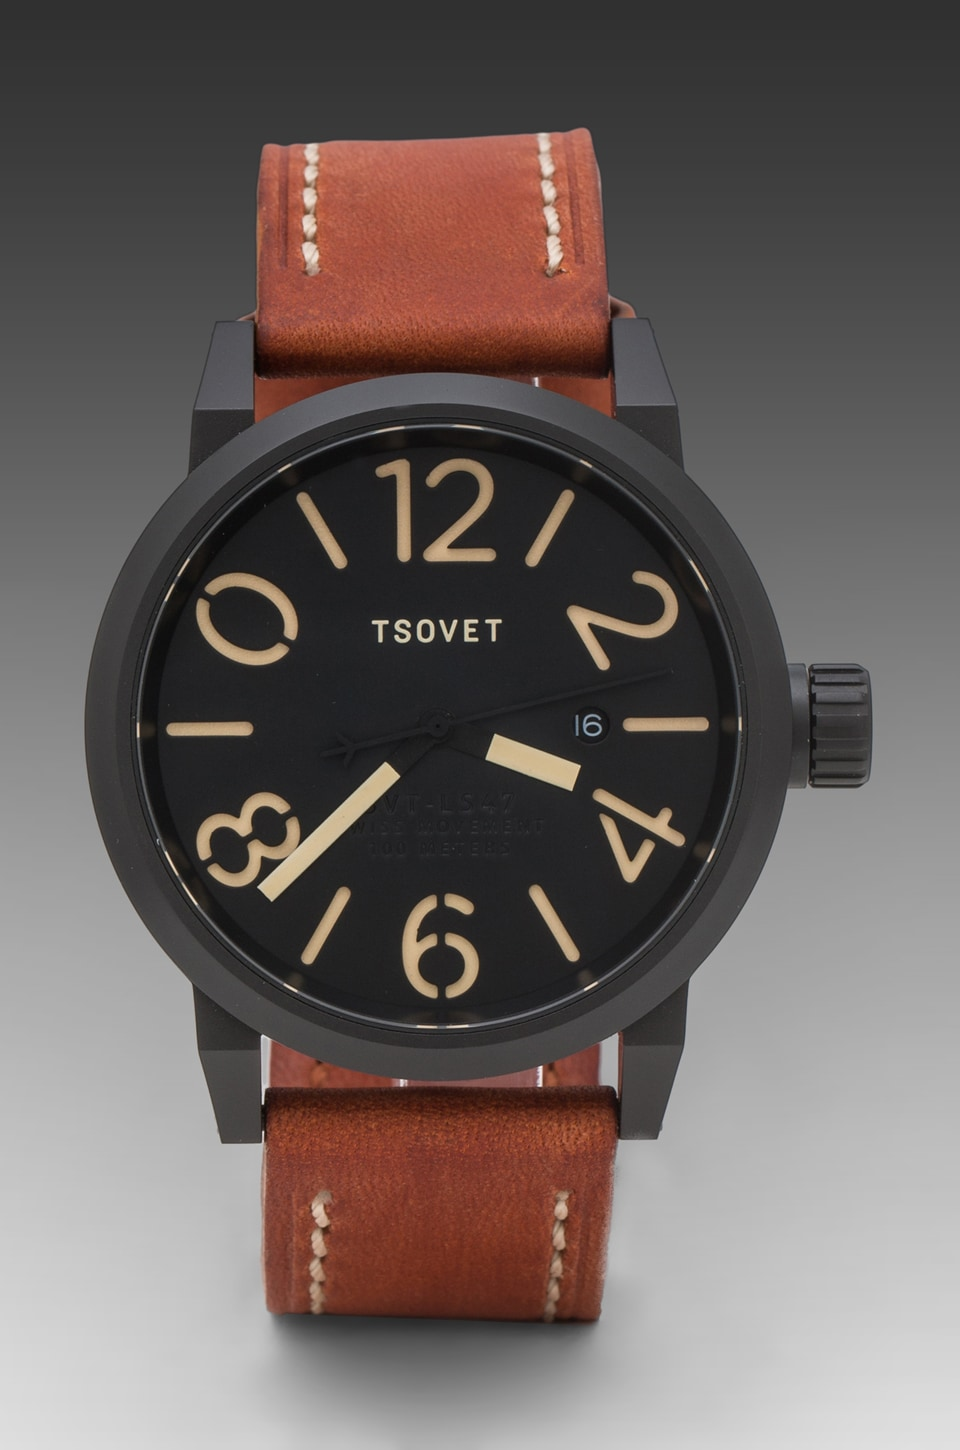 Tsovet SVT-LS47 in Black/Black/Rouille